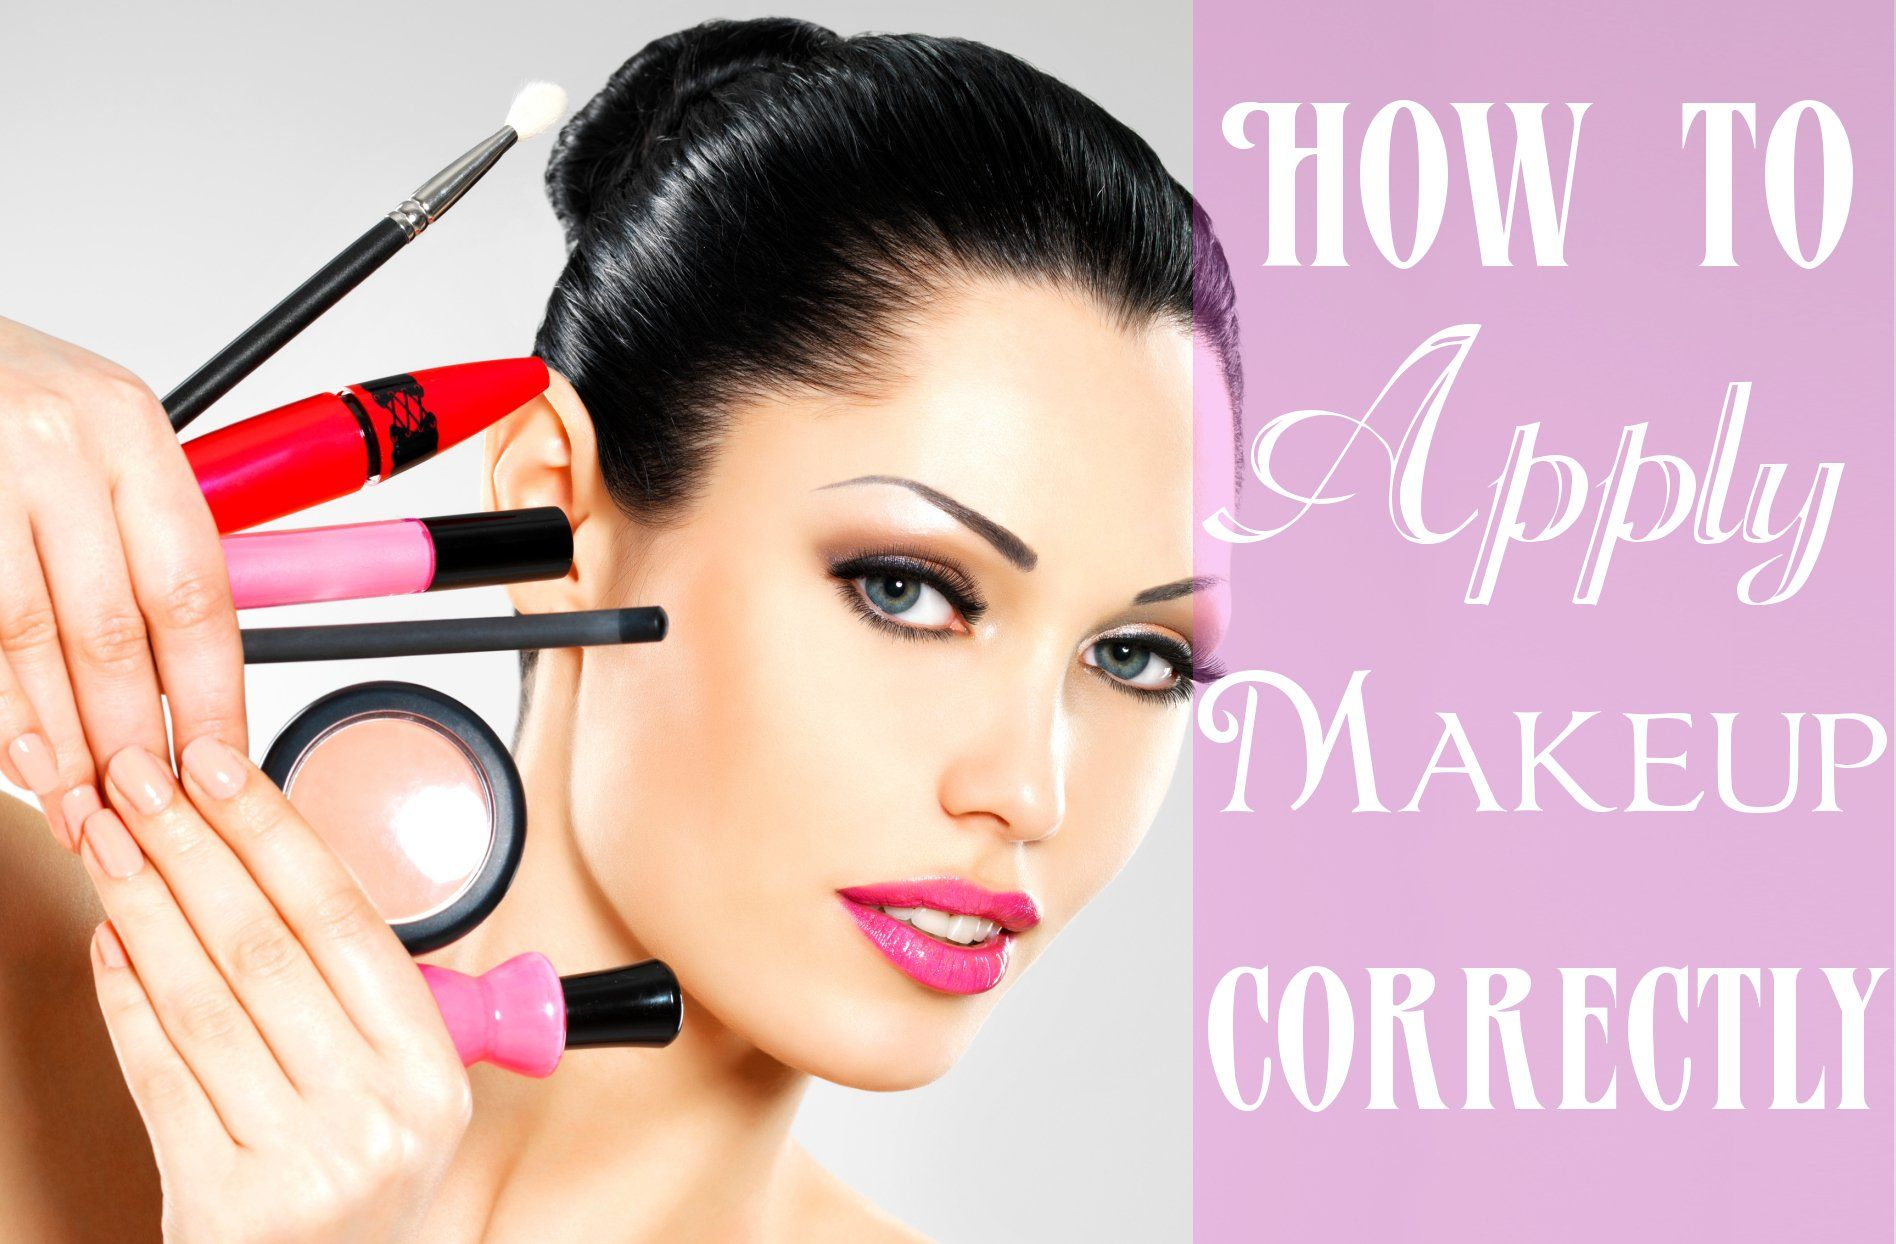 How to Apply Makeup Correctly Southern Californias R.R